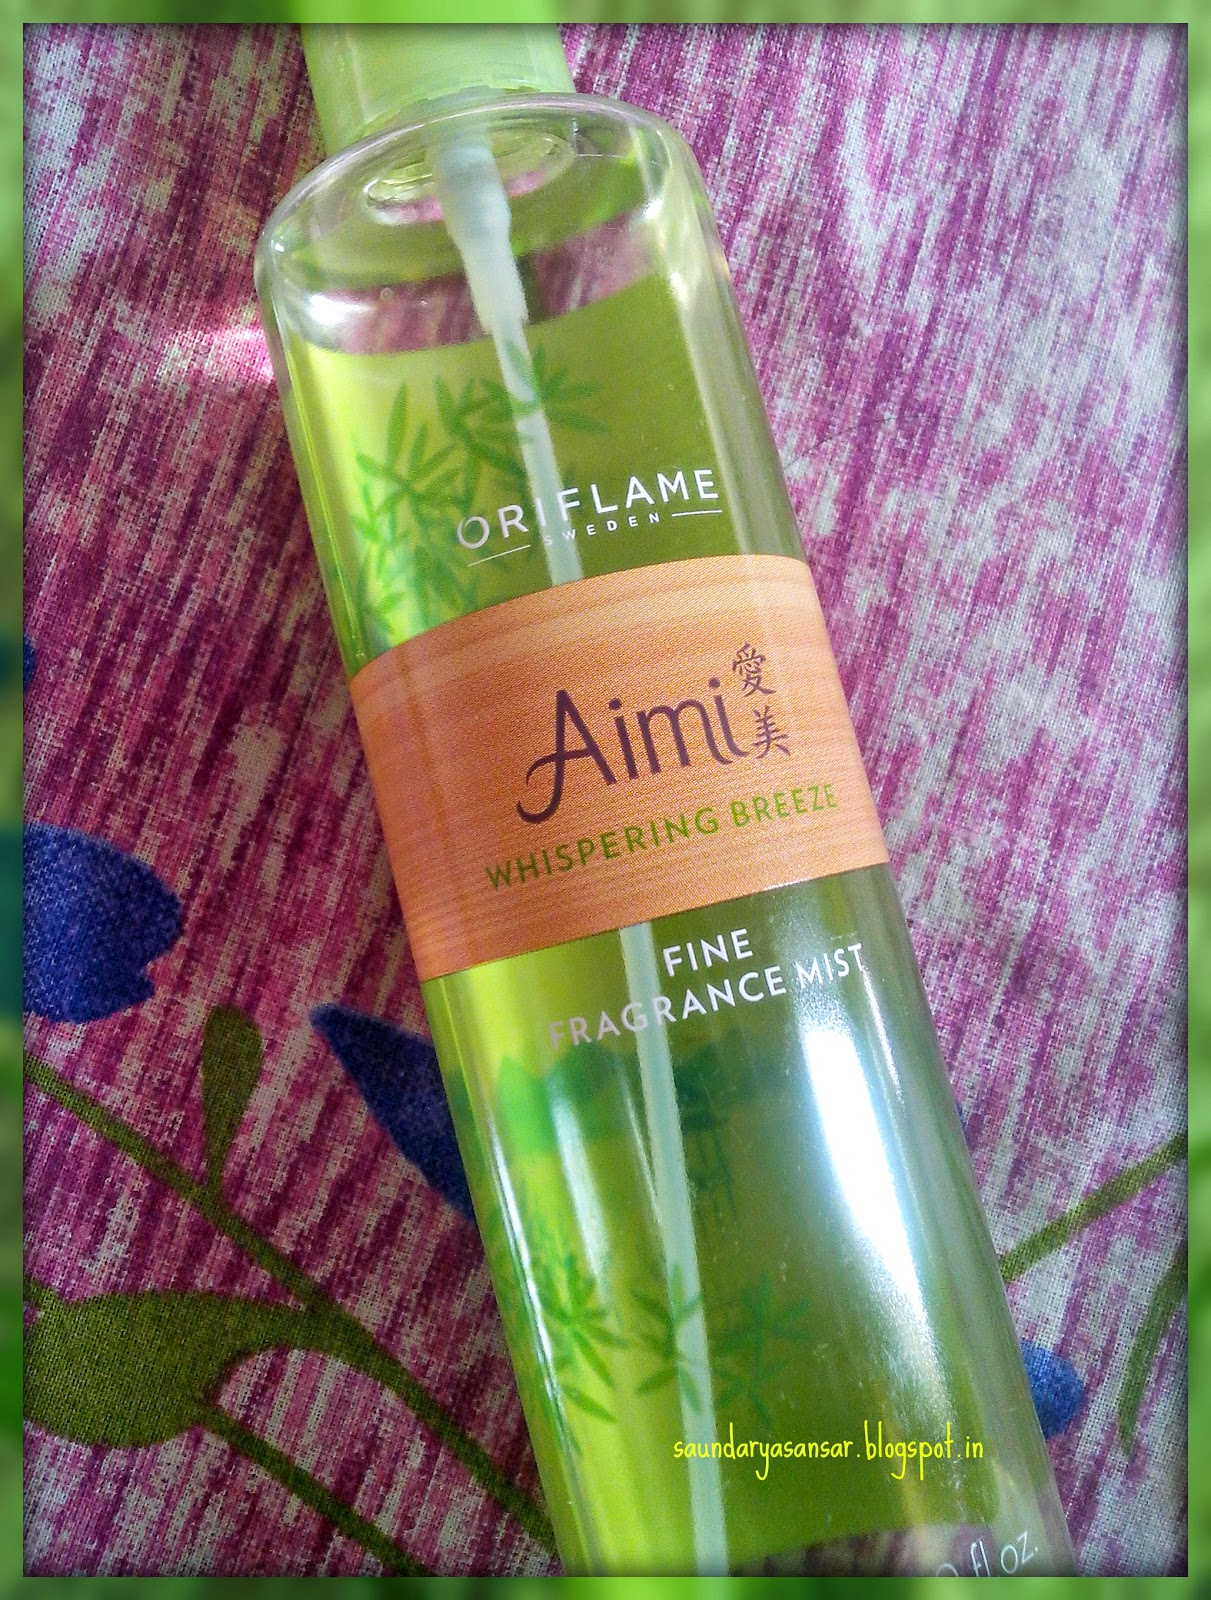 Oriflame Fragrance Mist - Aimi Whispering Breeze review